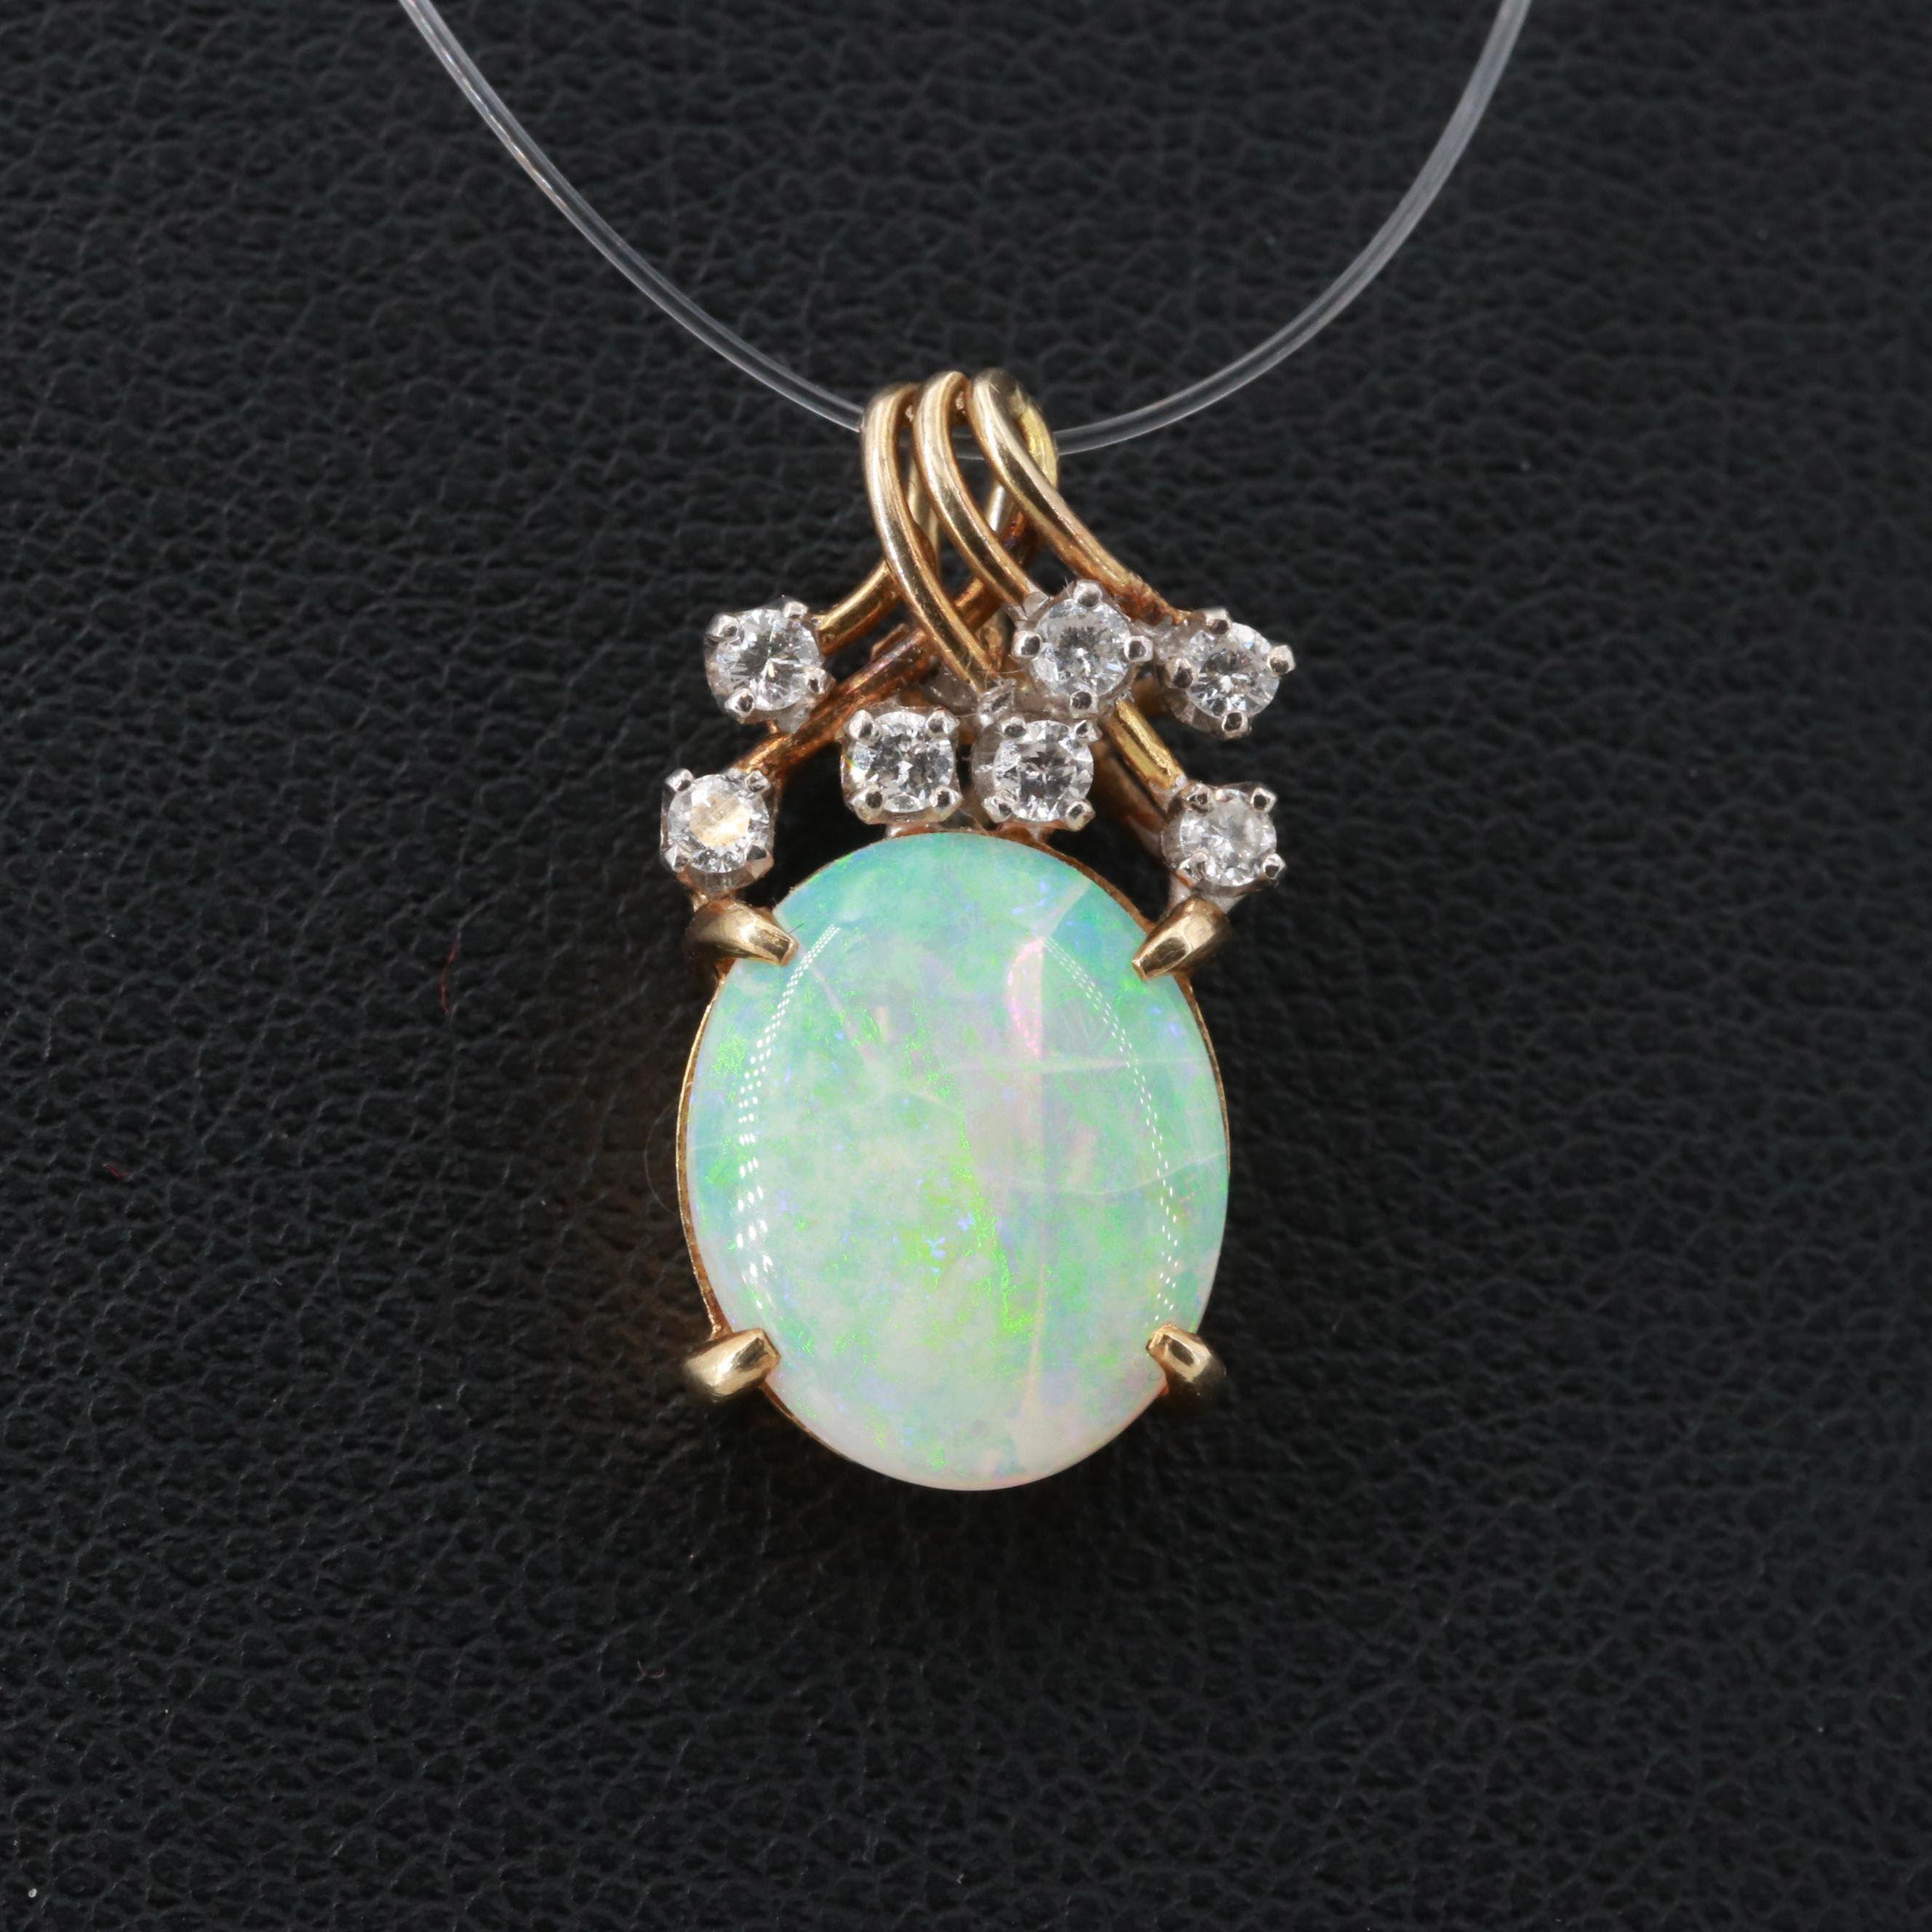 14K Yellow Gold Diamond and Opal Pendant